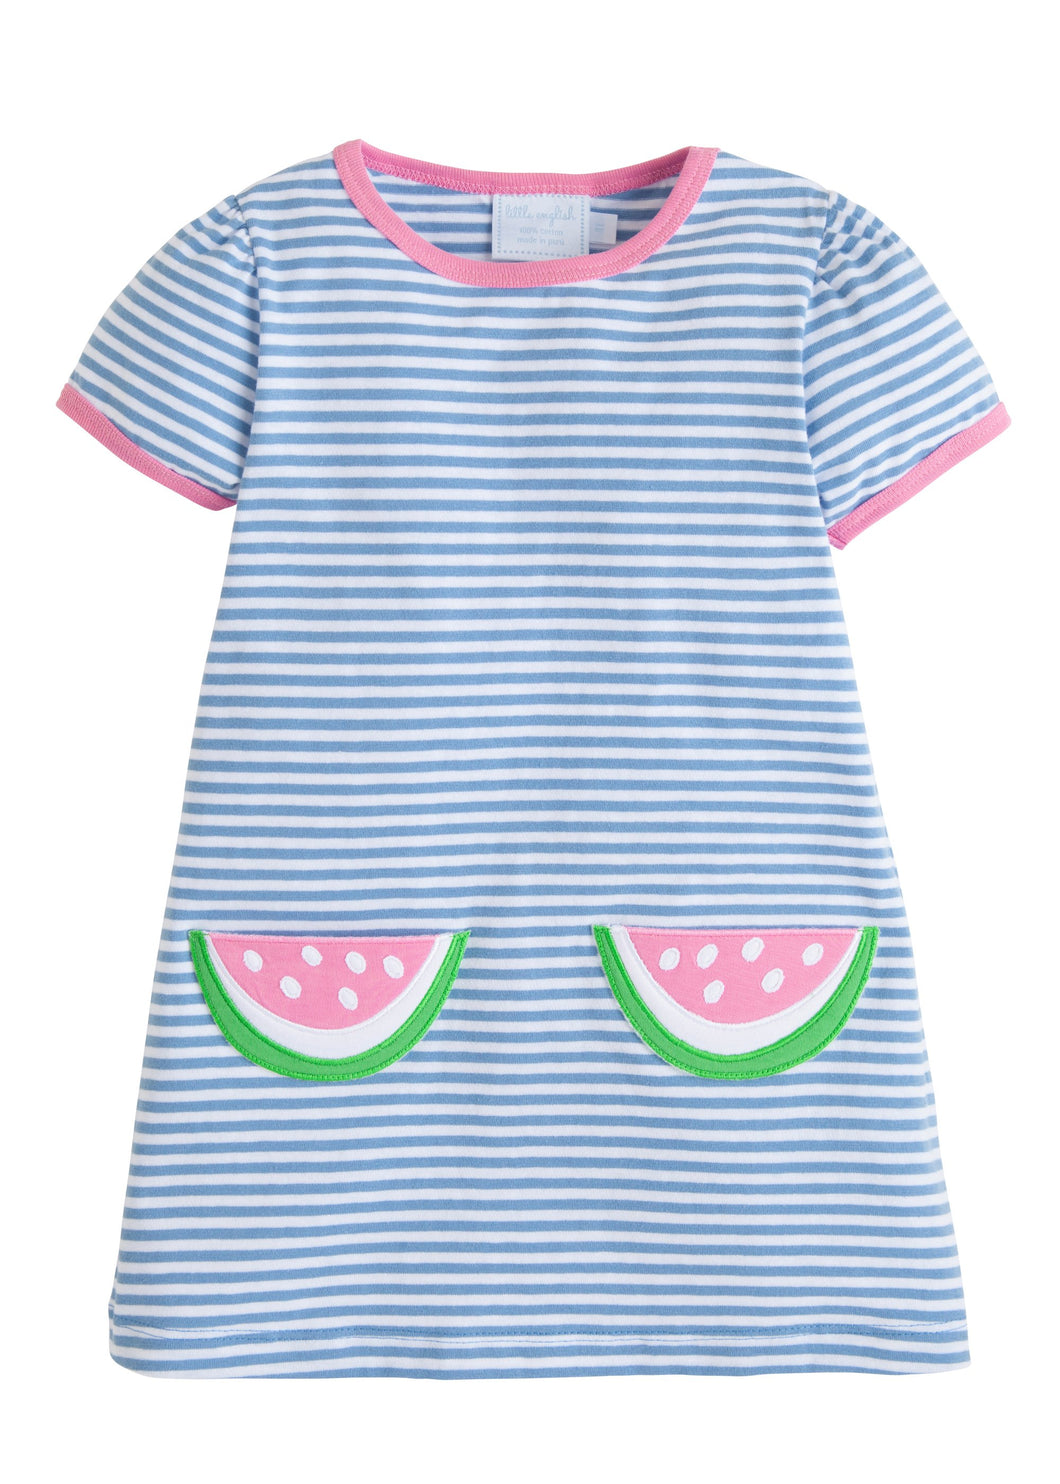 Little English Watermelon T-Shirt Dress